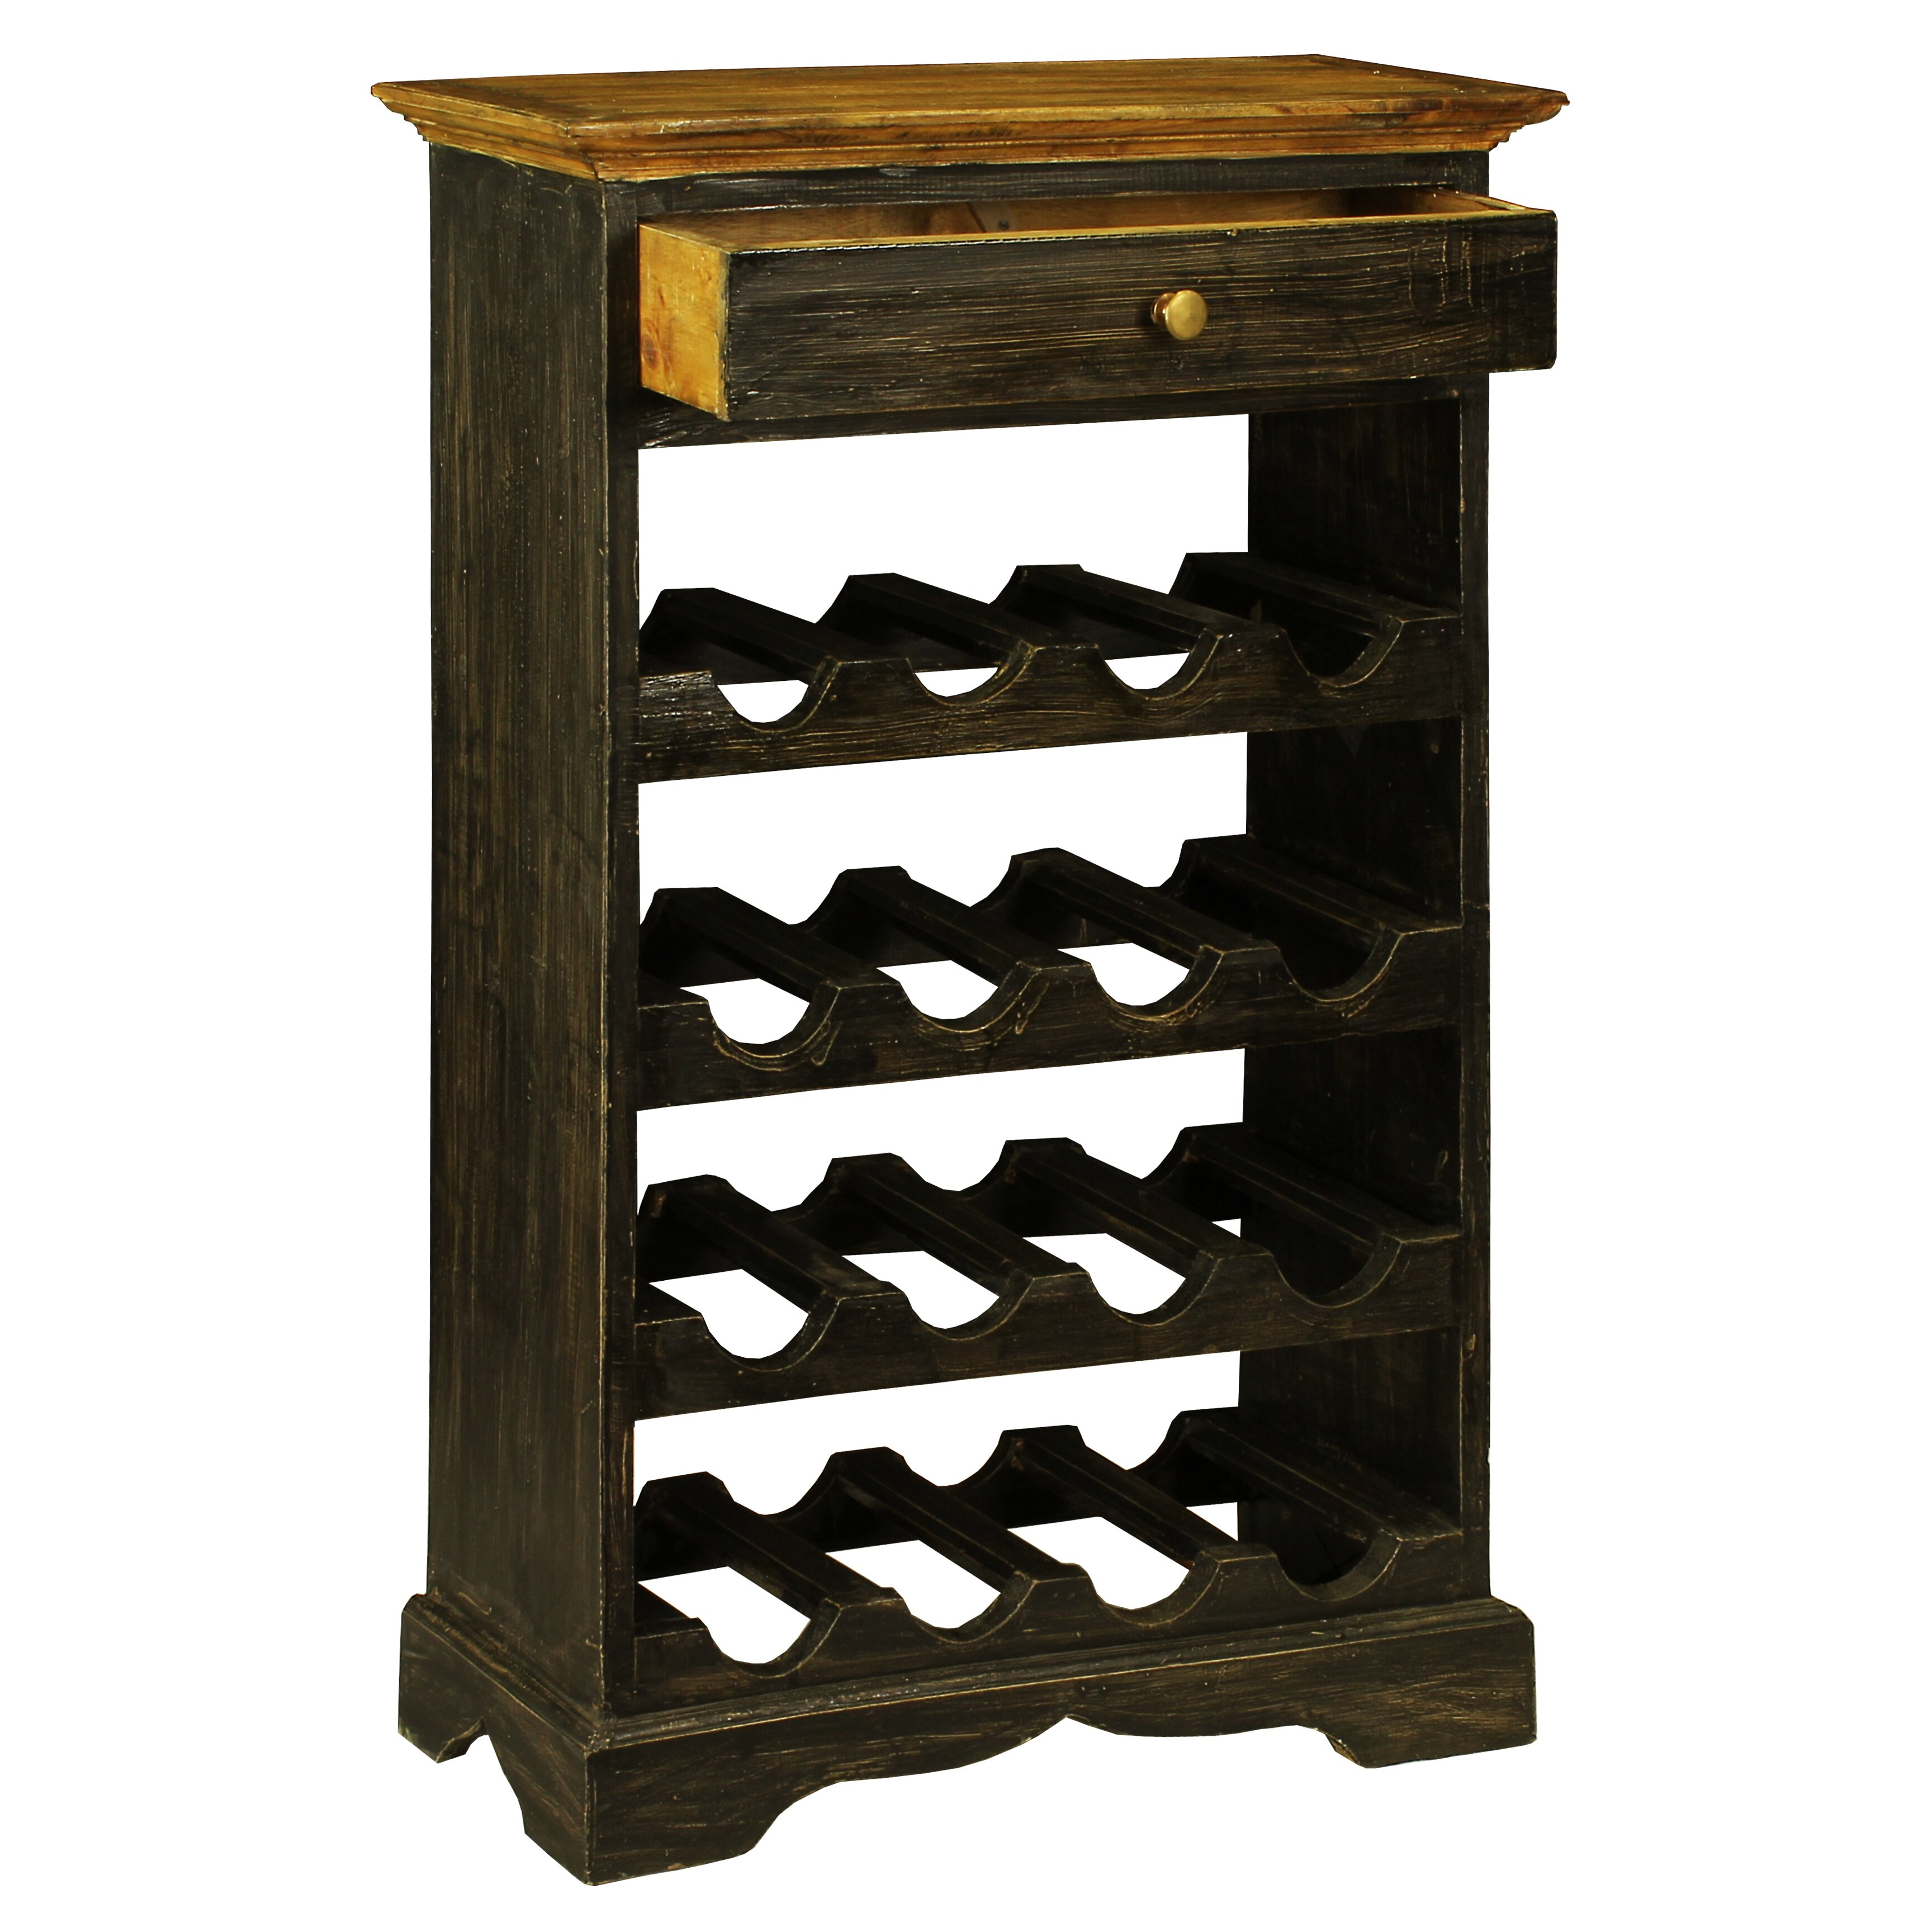 Antique revival auburn 16 bottle floor wine rack reviews for Floor wine rack